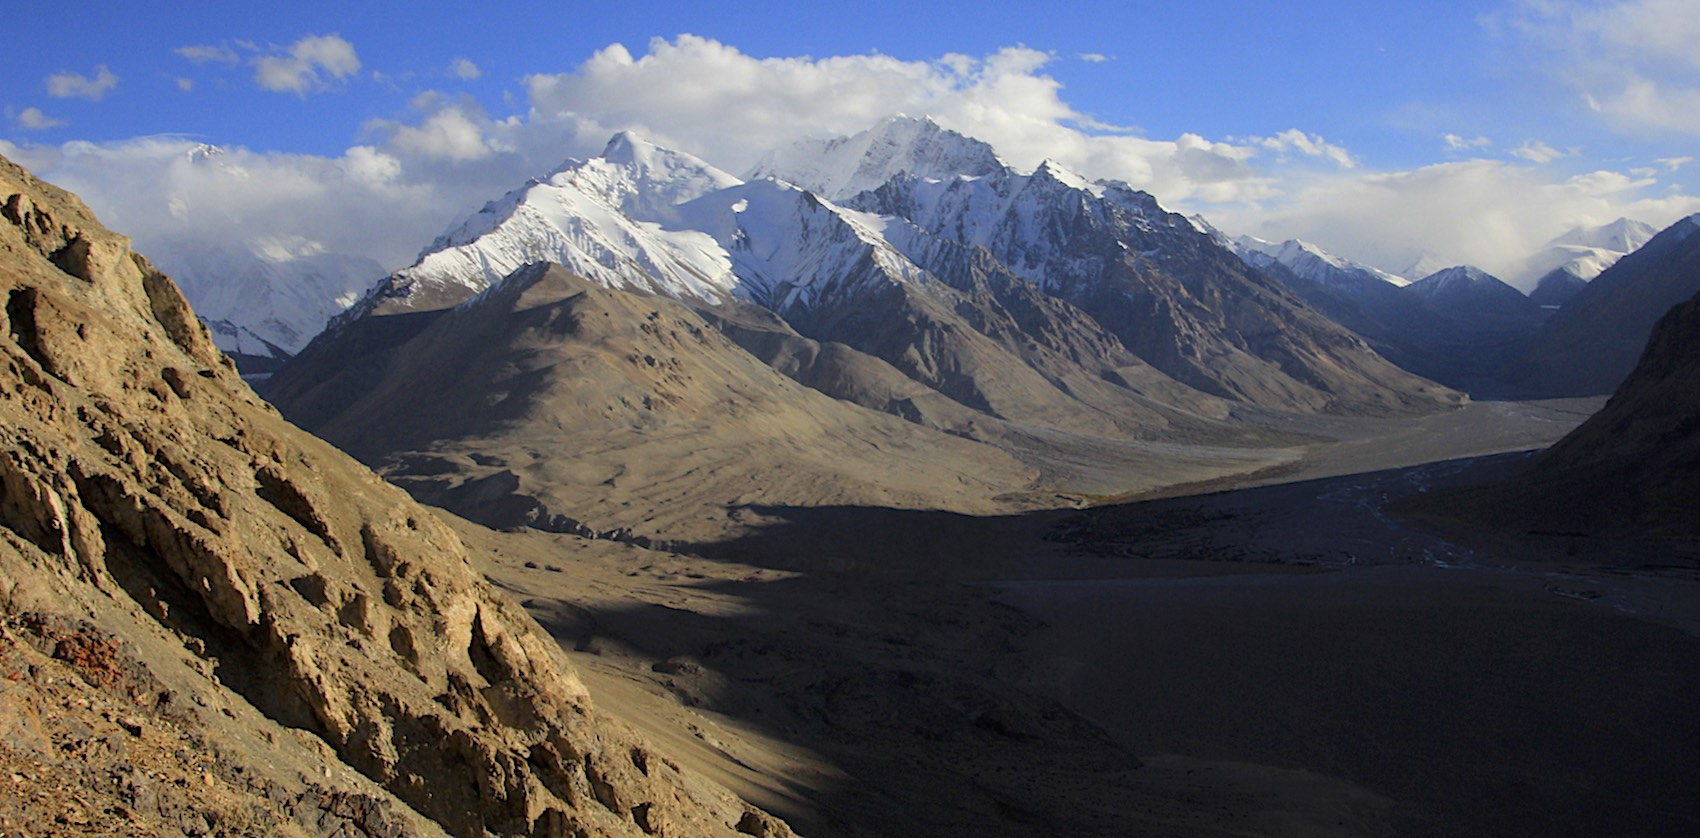 The Chinese BC and K2 (on the left)